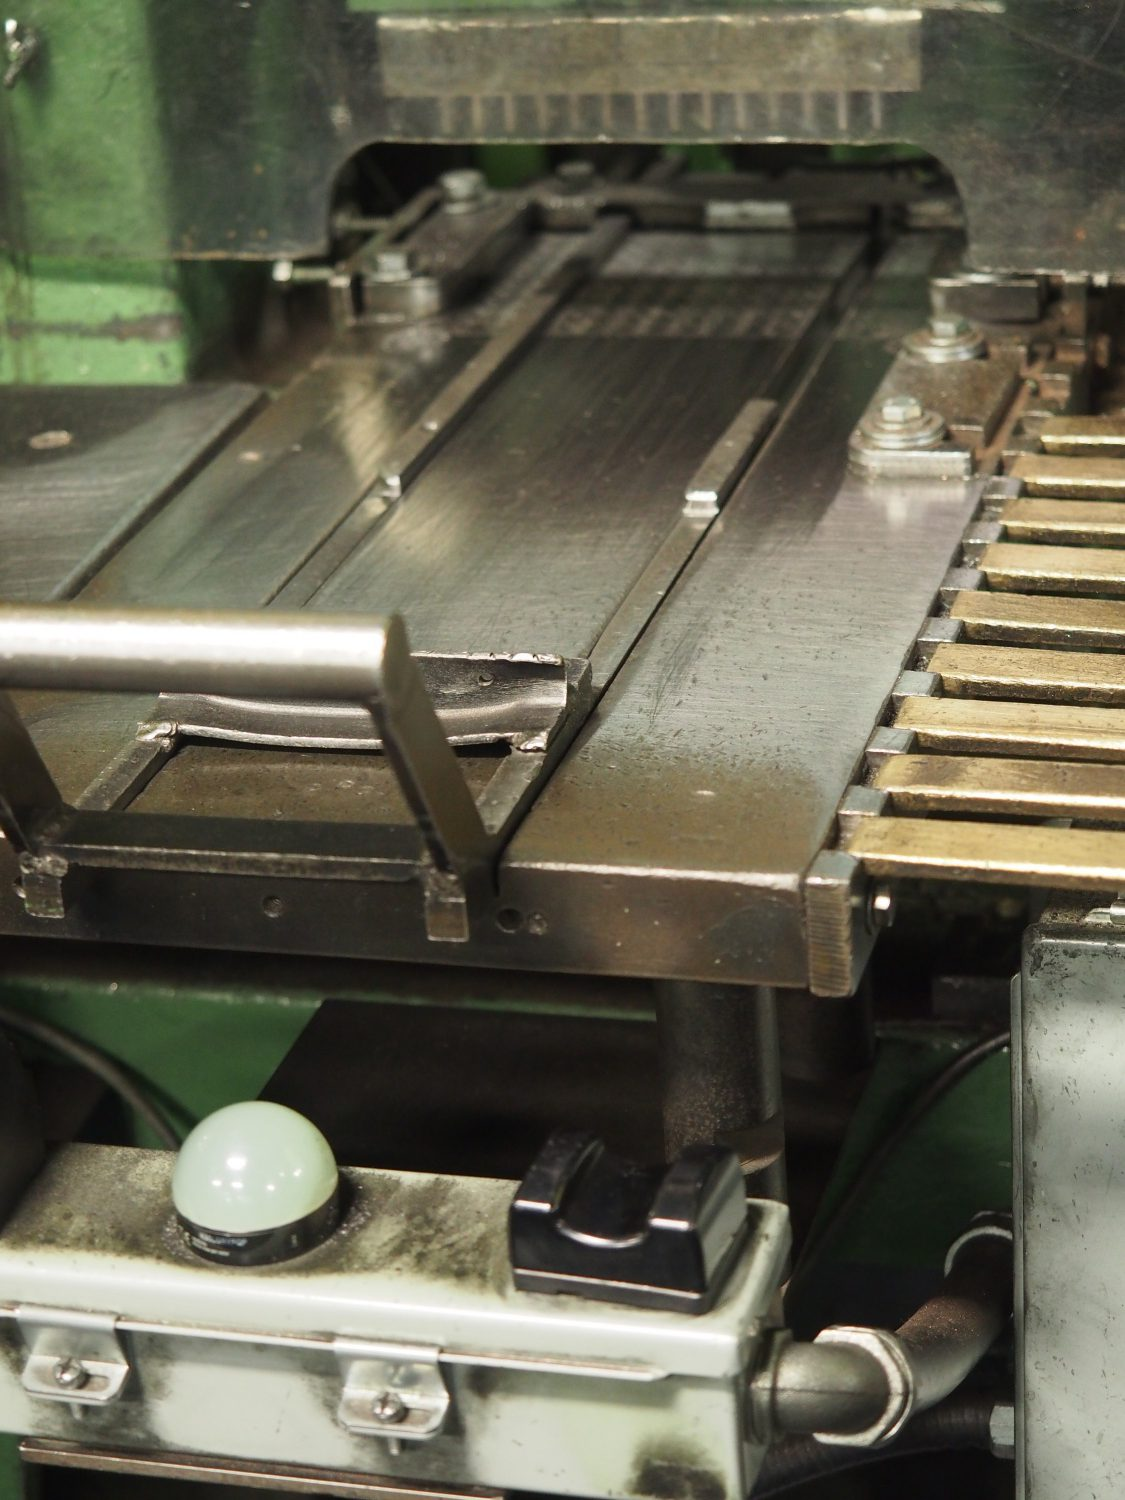 Trays are placed in front of these railed slides where the machine seats the bullets all in one stroke.